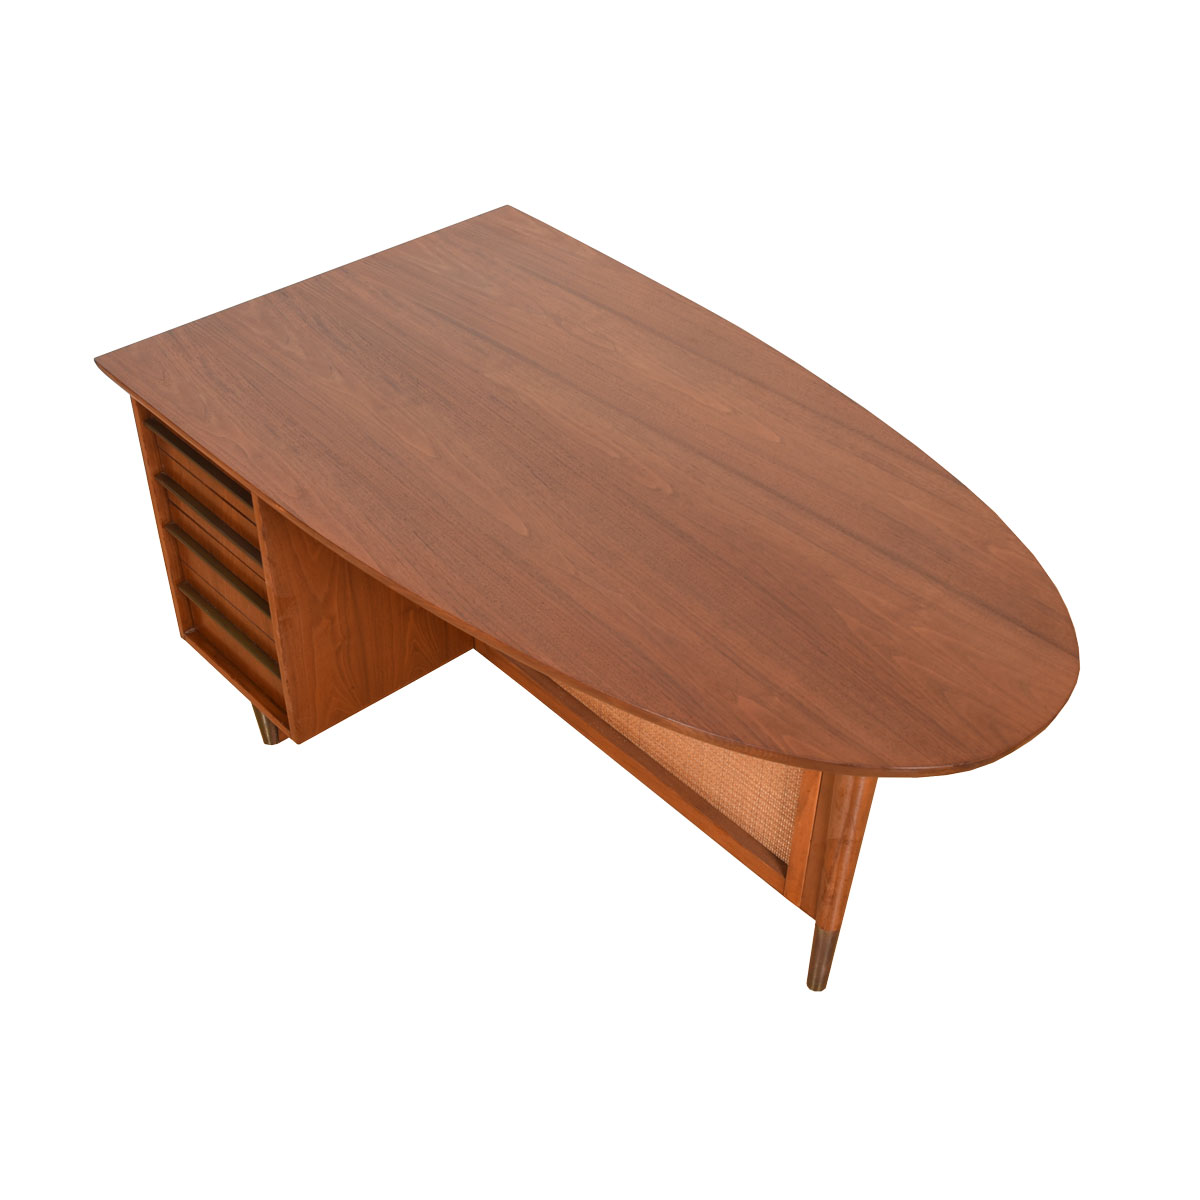 Unique Ovoid Walnut Desk with 3 Drawers